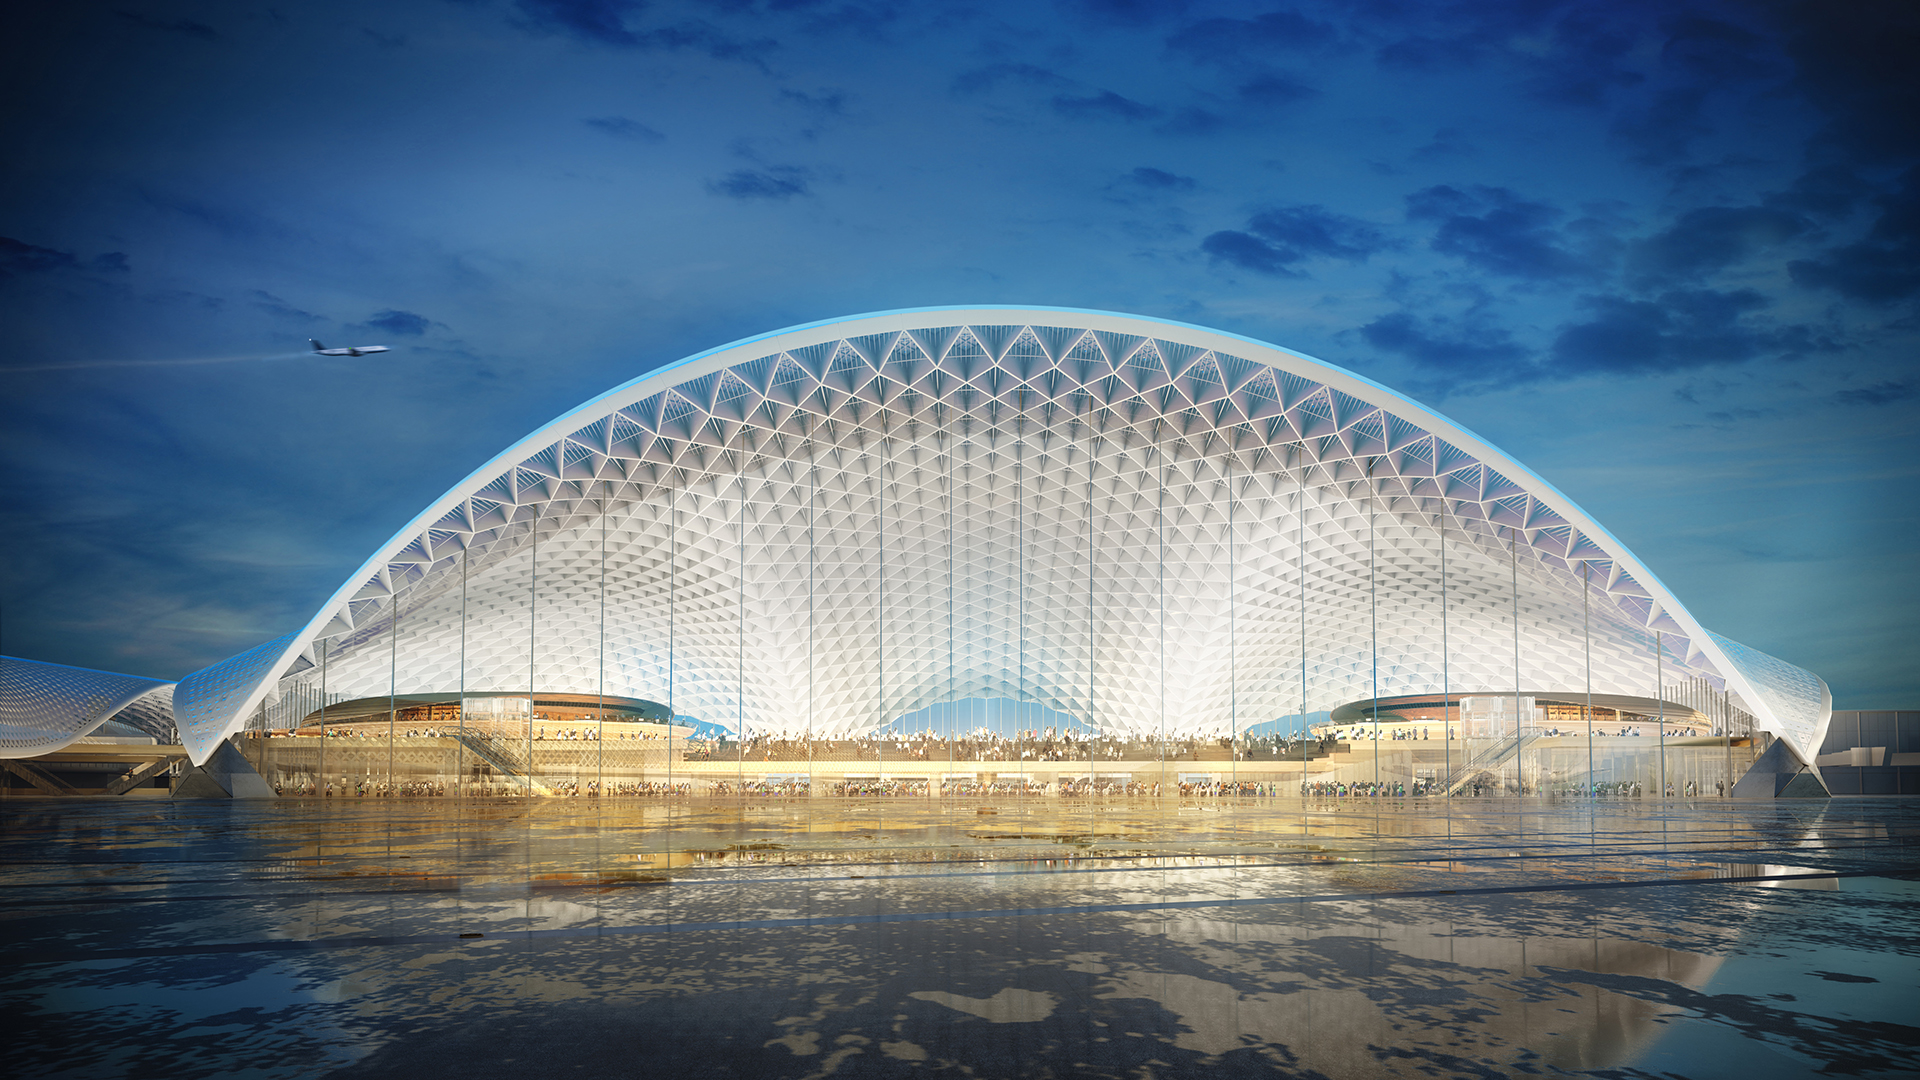 Here are the five finalist designs competing for O'Hare Airport's massive $8.5B expansion